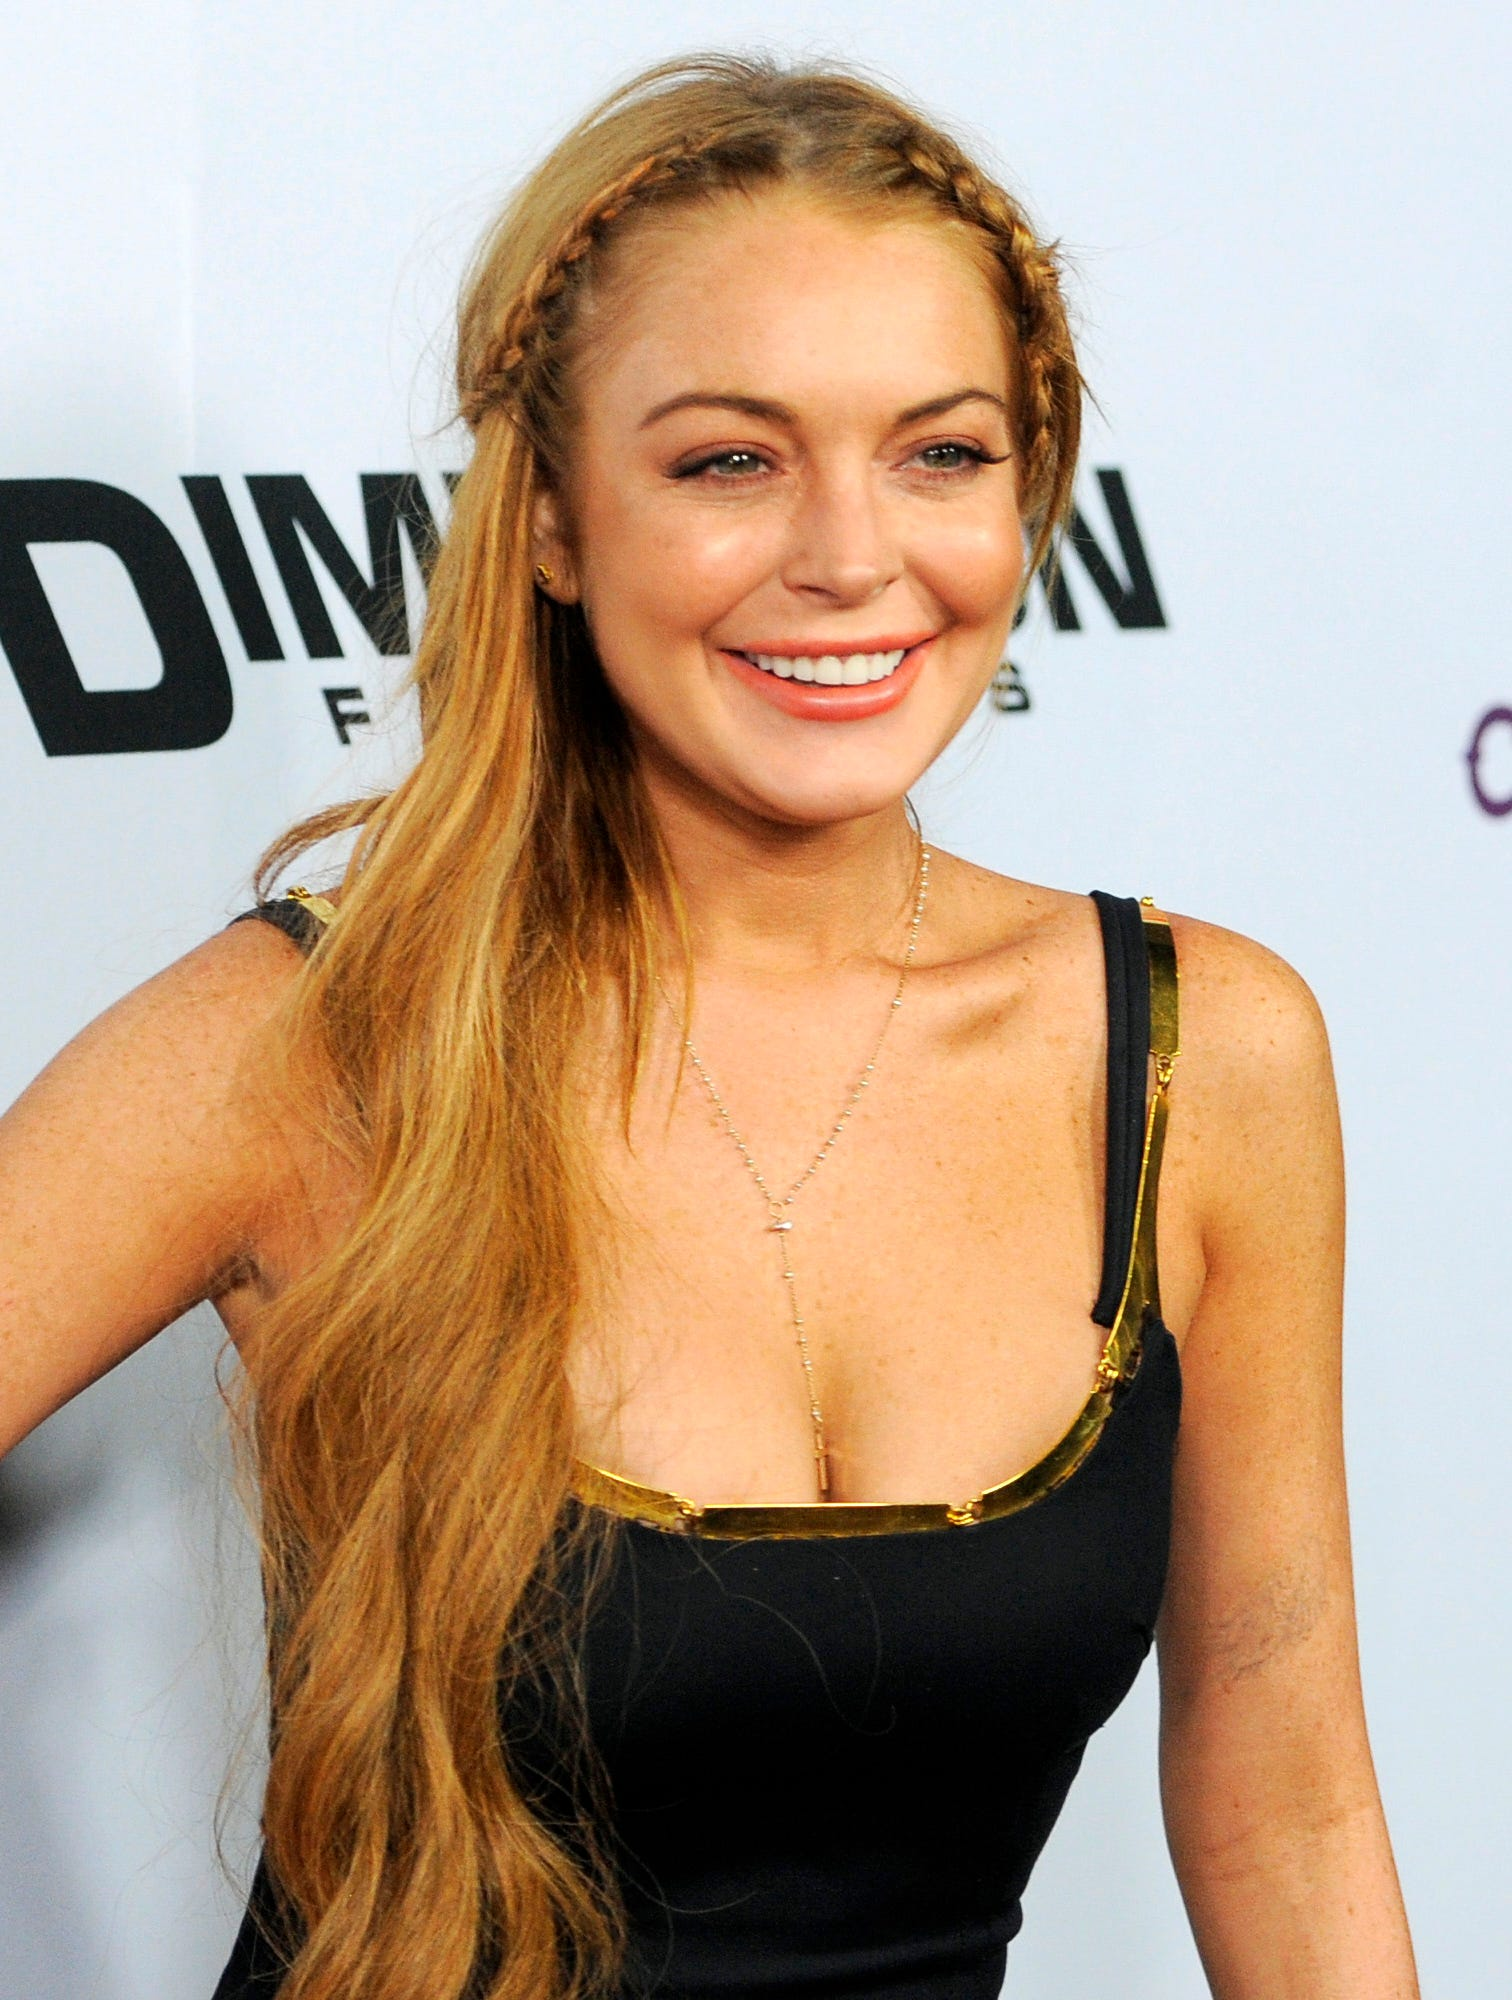 To acquire Lohan lindsay breaks upwith her business manager picture trends